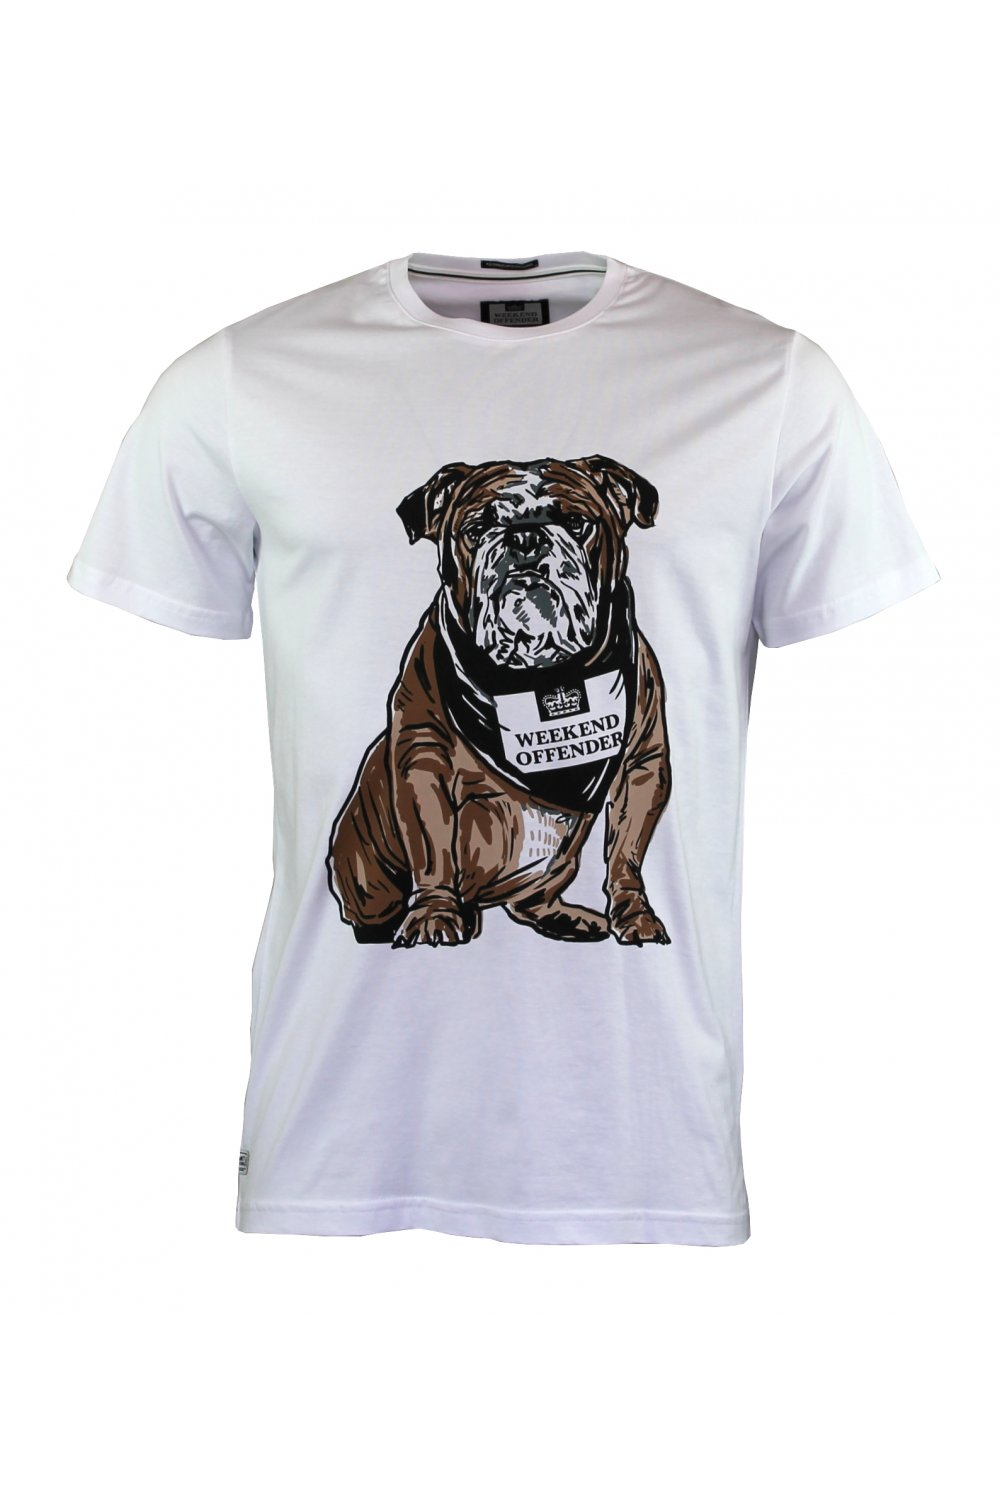 Bulldog Short Sleeved T Shirt White T Shirts From